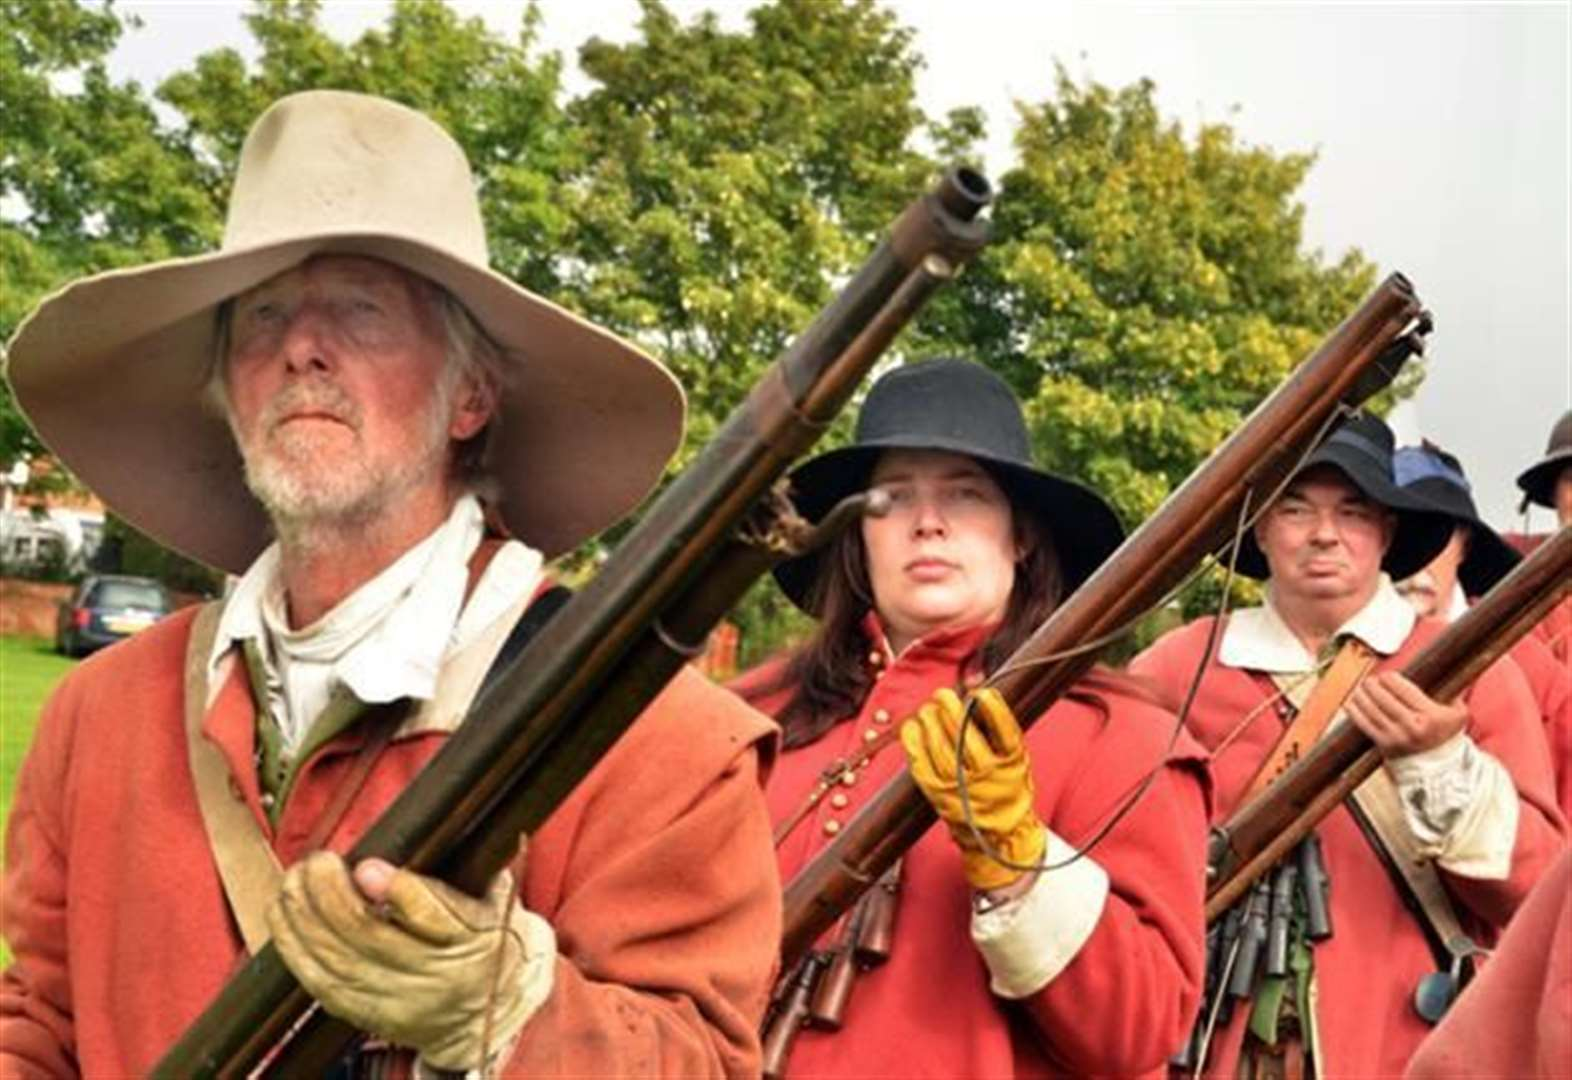 Step into history at thrilling re-enactment weekend in Sutton St James